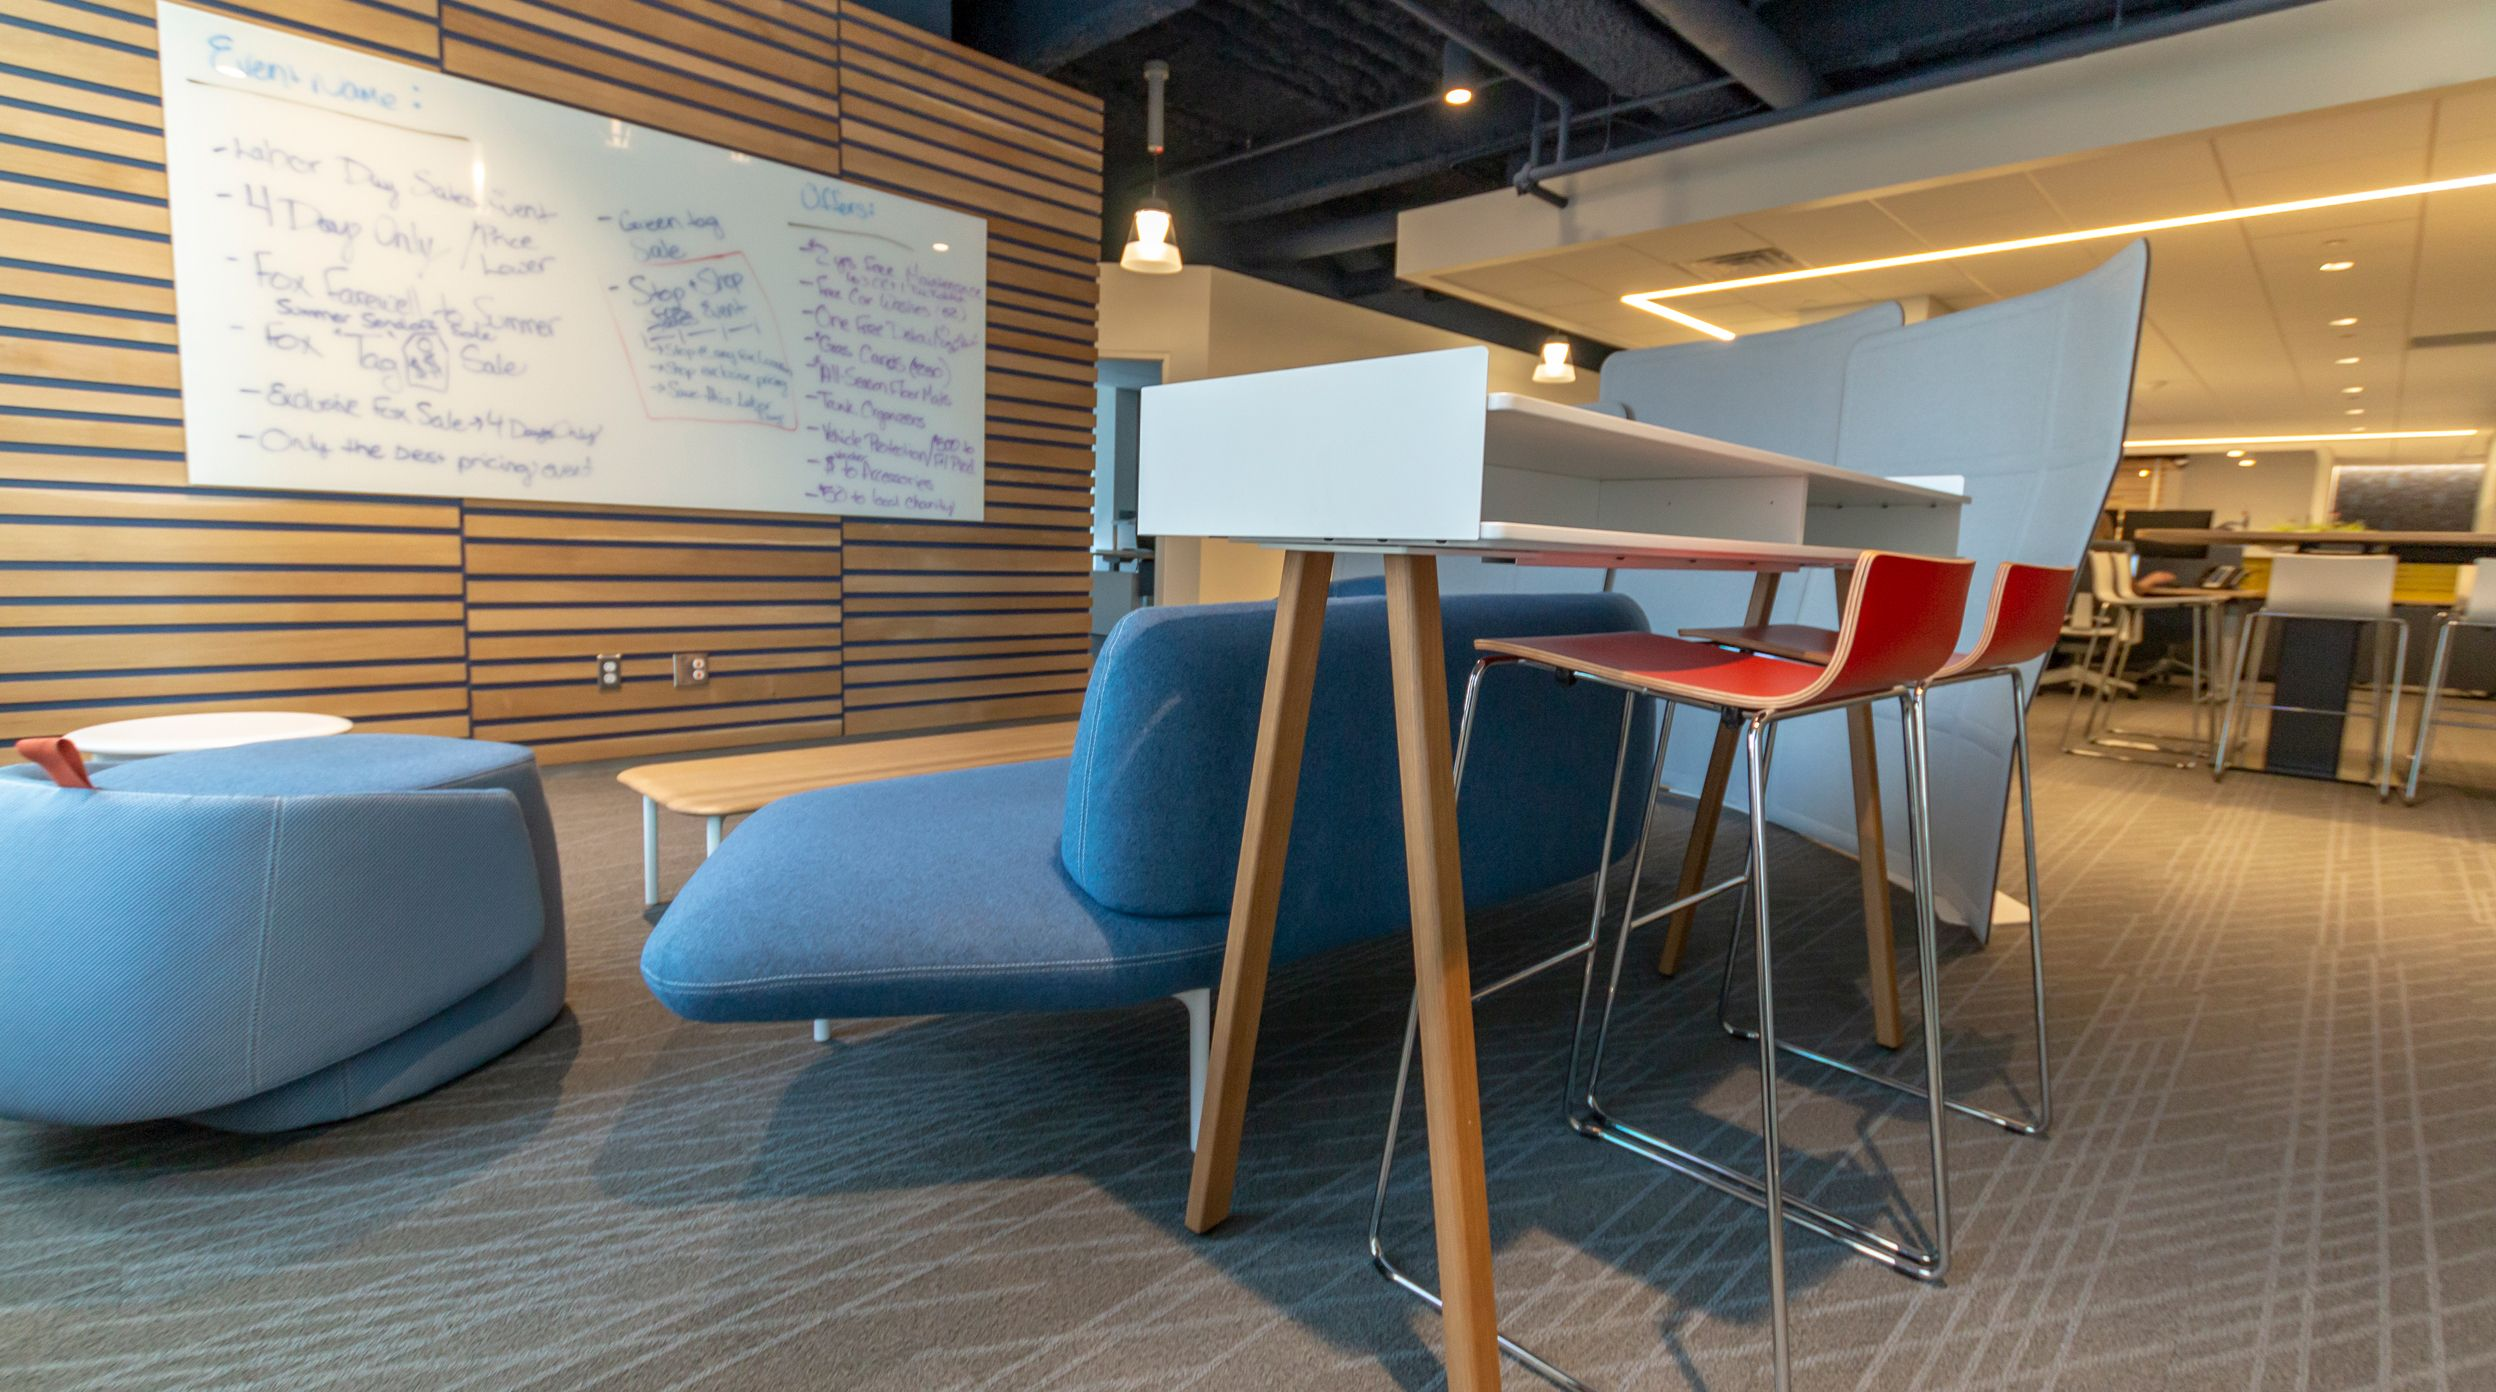 Via Design Provides An Interior Update To Fox Motors Corporate Office In Grand Rapids Michigan Wood Paneling Lounge Area Blue Chair Ottoman